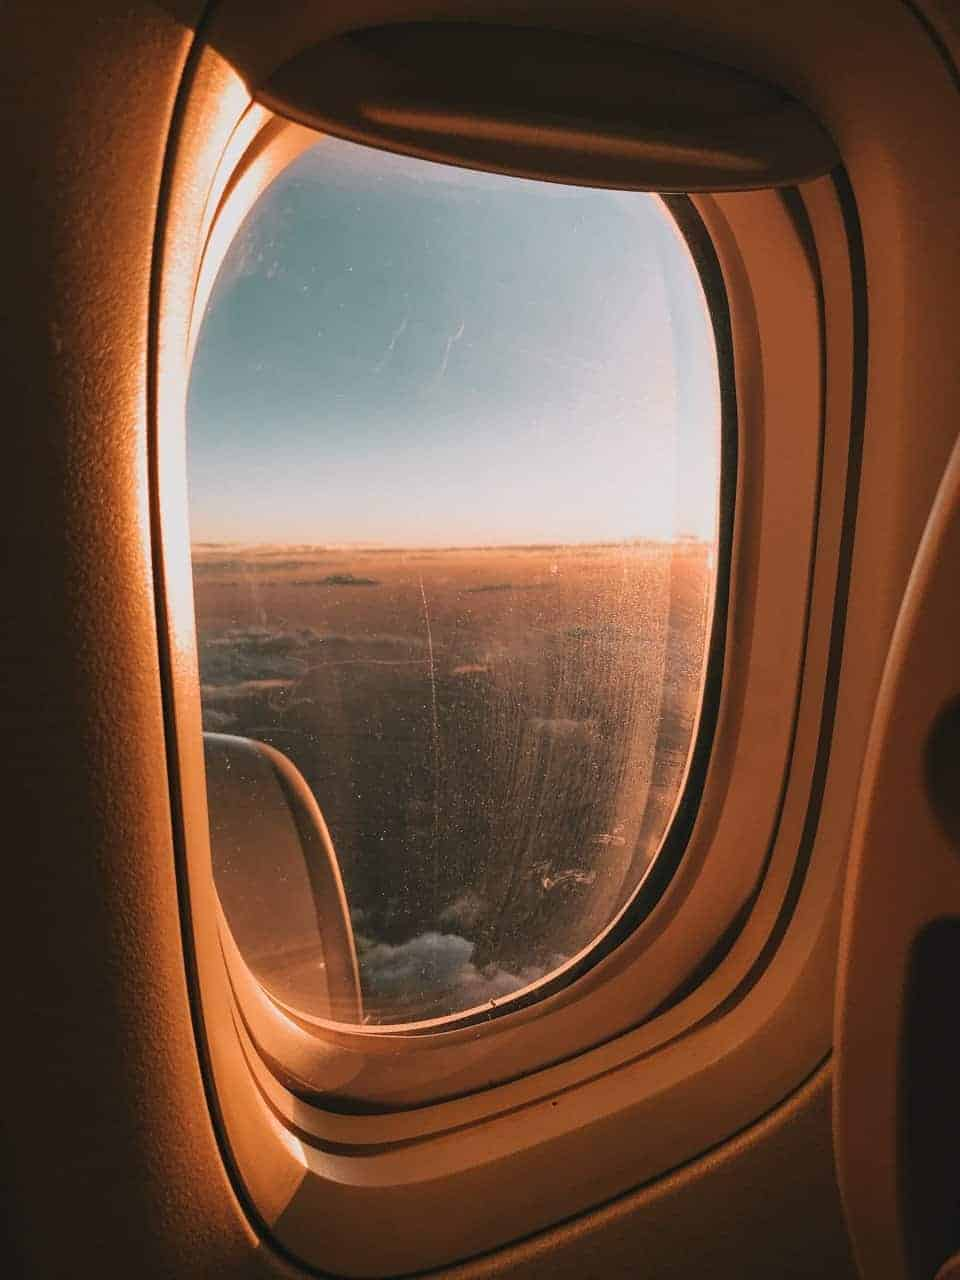 View from airplane window seat overlooking the ocean at sunset